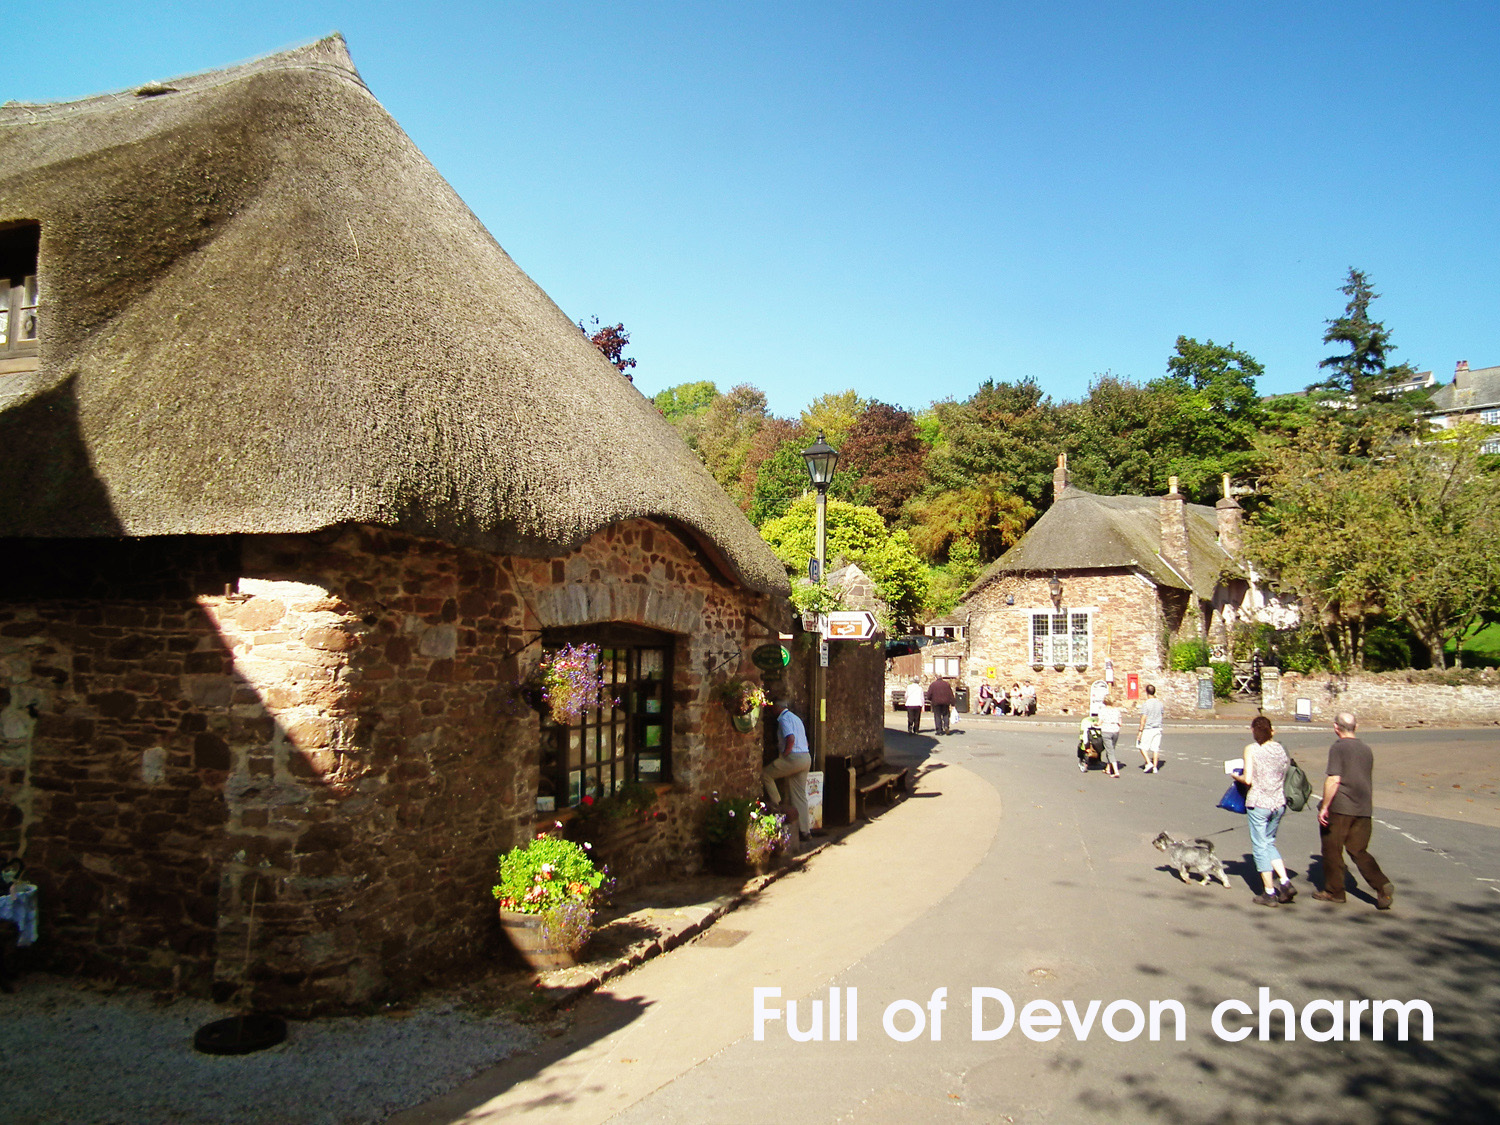 Cockington thatched cottages in October